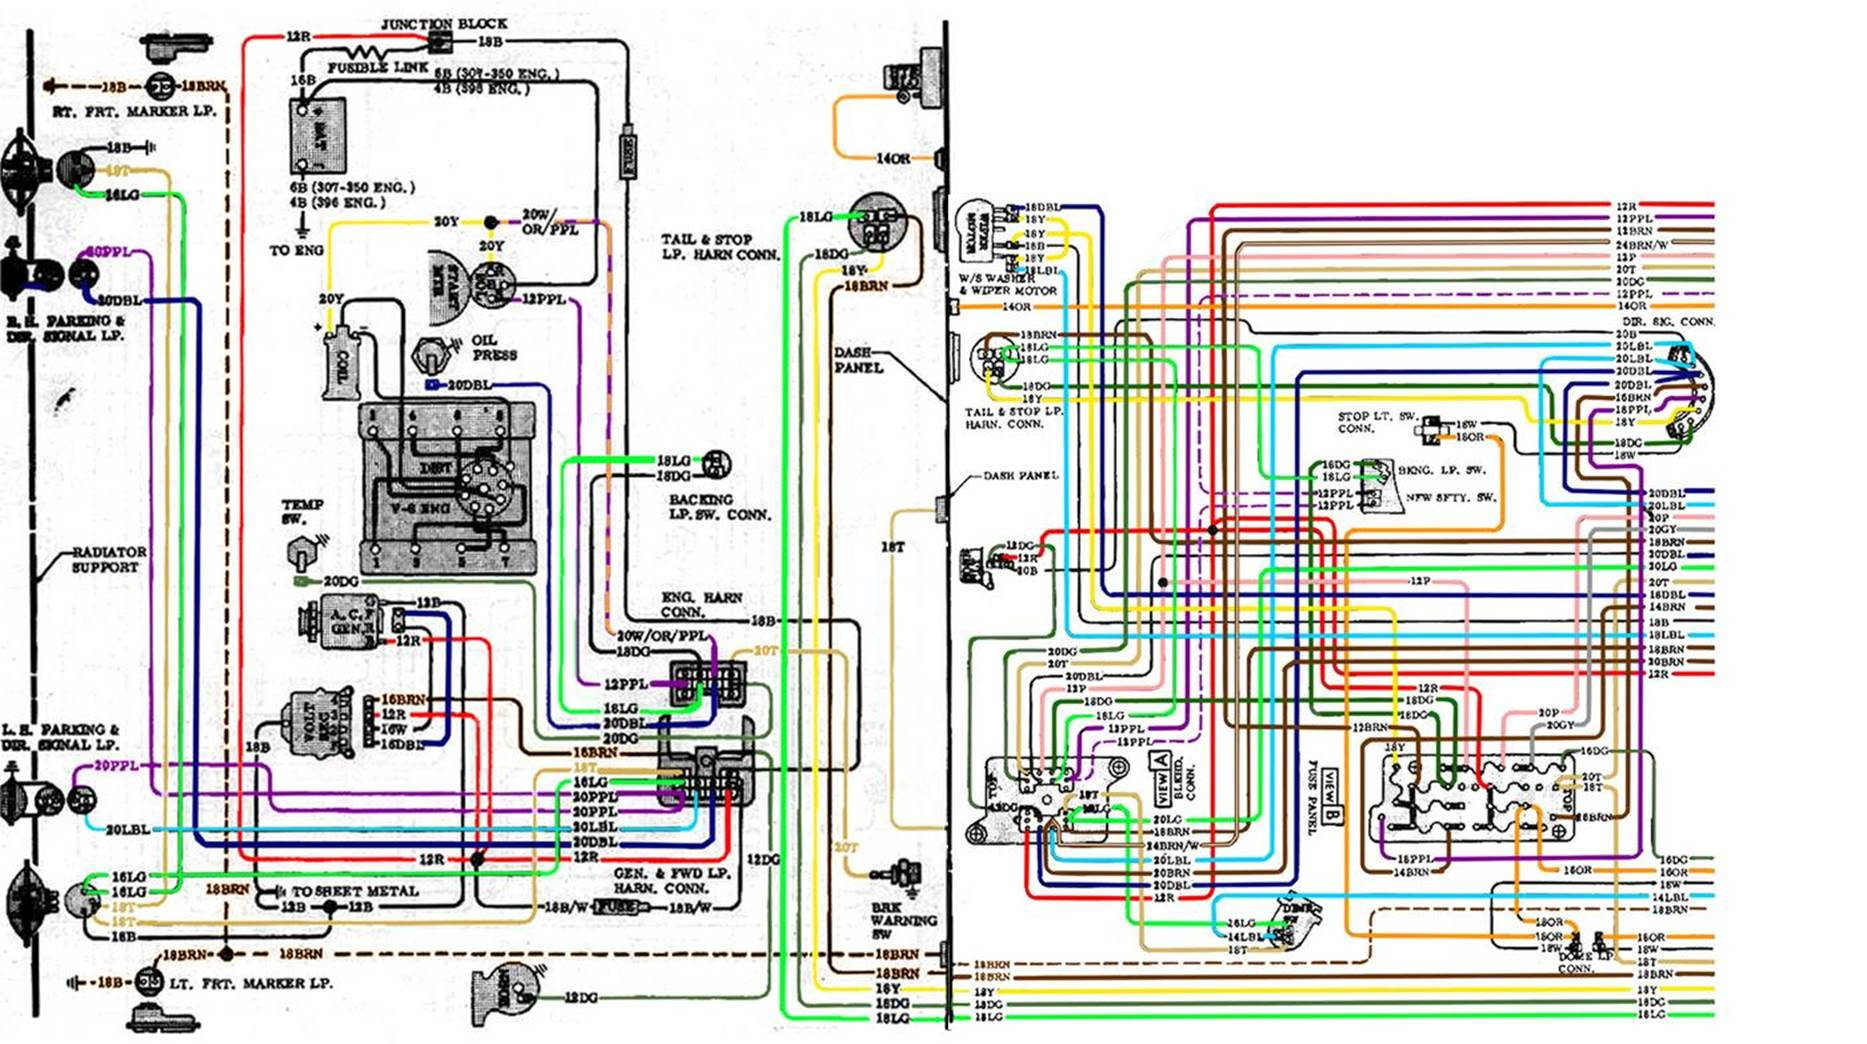 image002 1969 chevy truck wiring diagram 1969 grand prix wiring diagram 1969 mustang wiring diagram online at gsmx.co